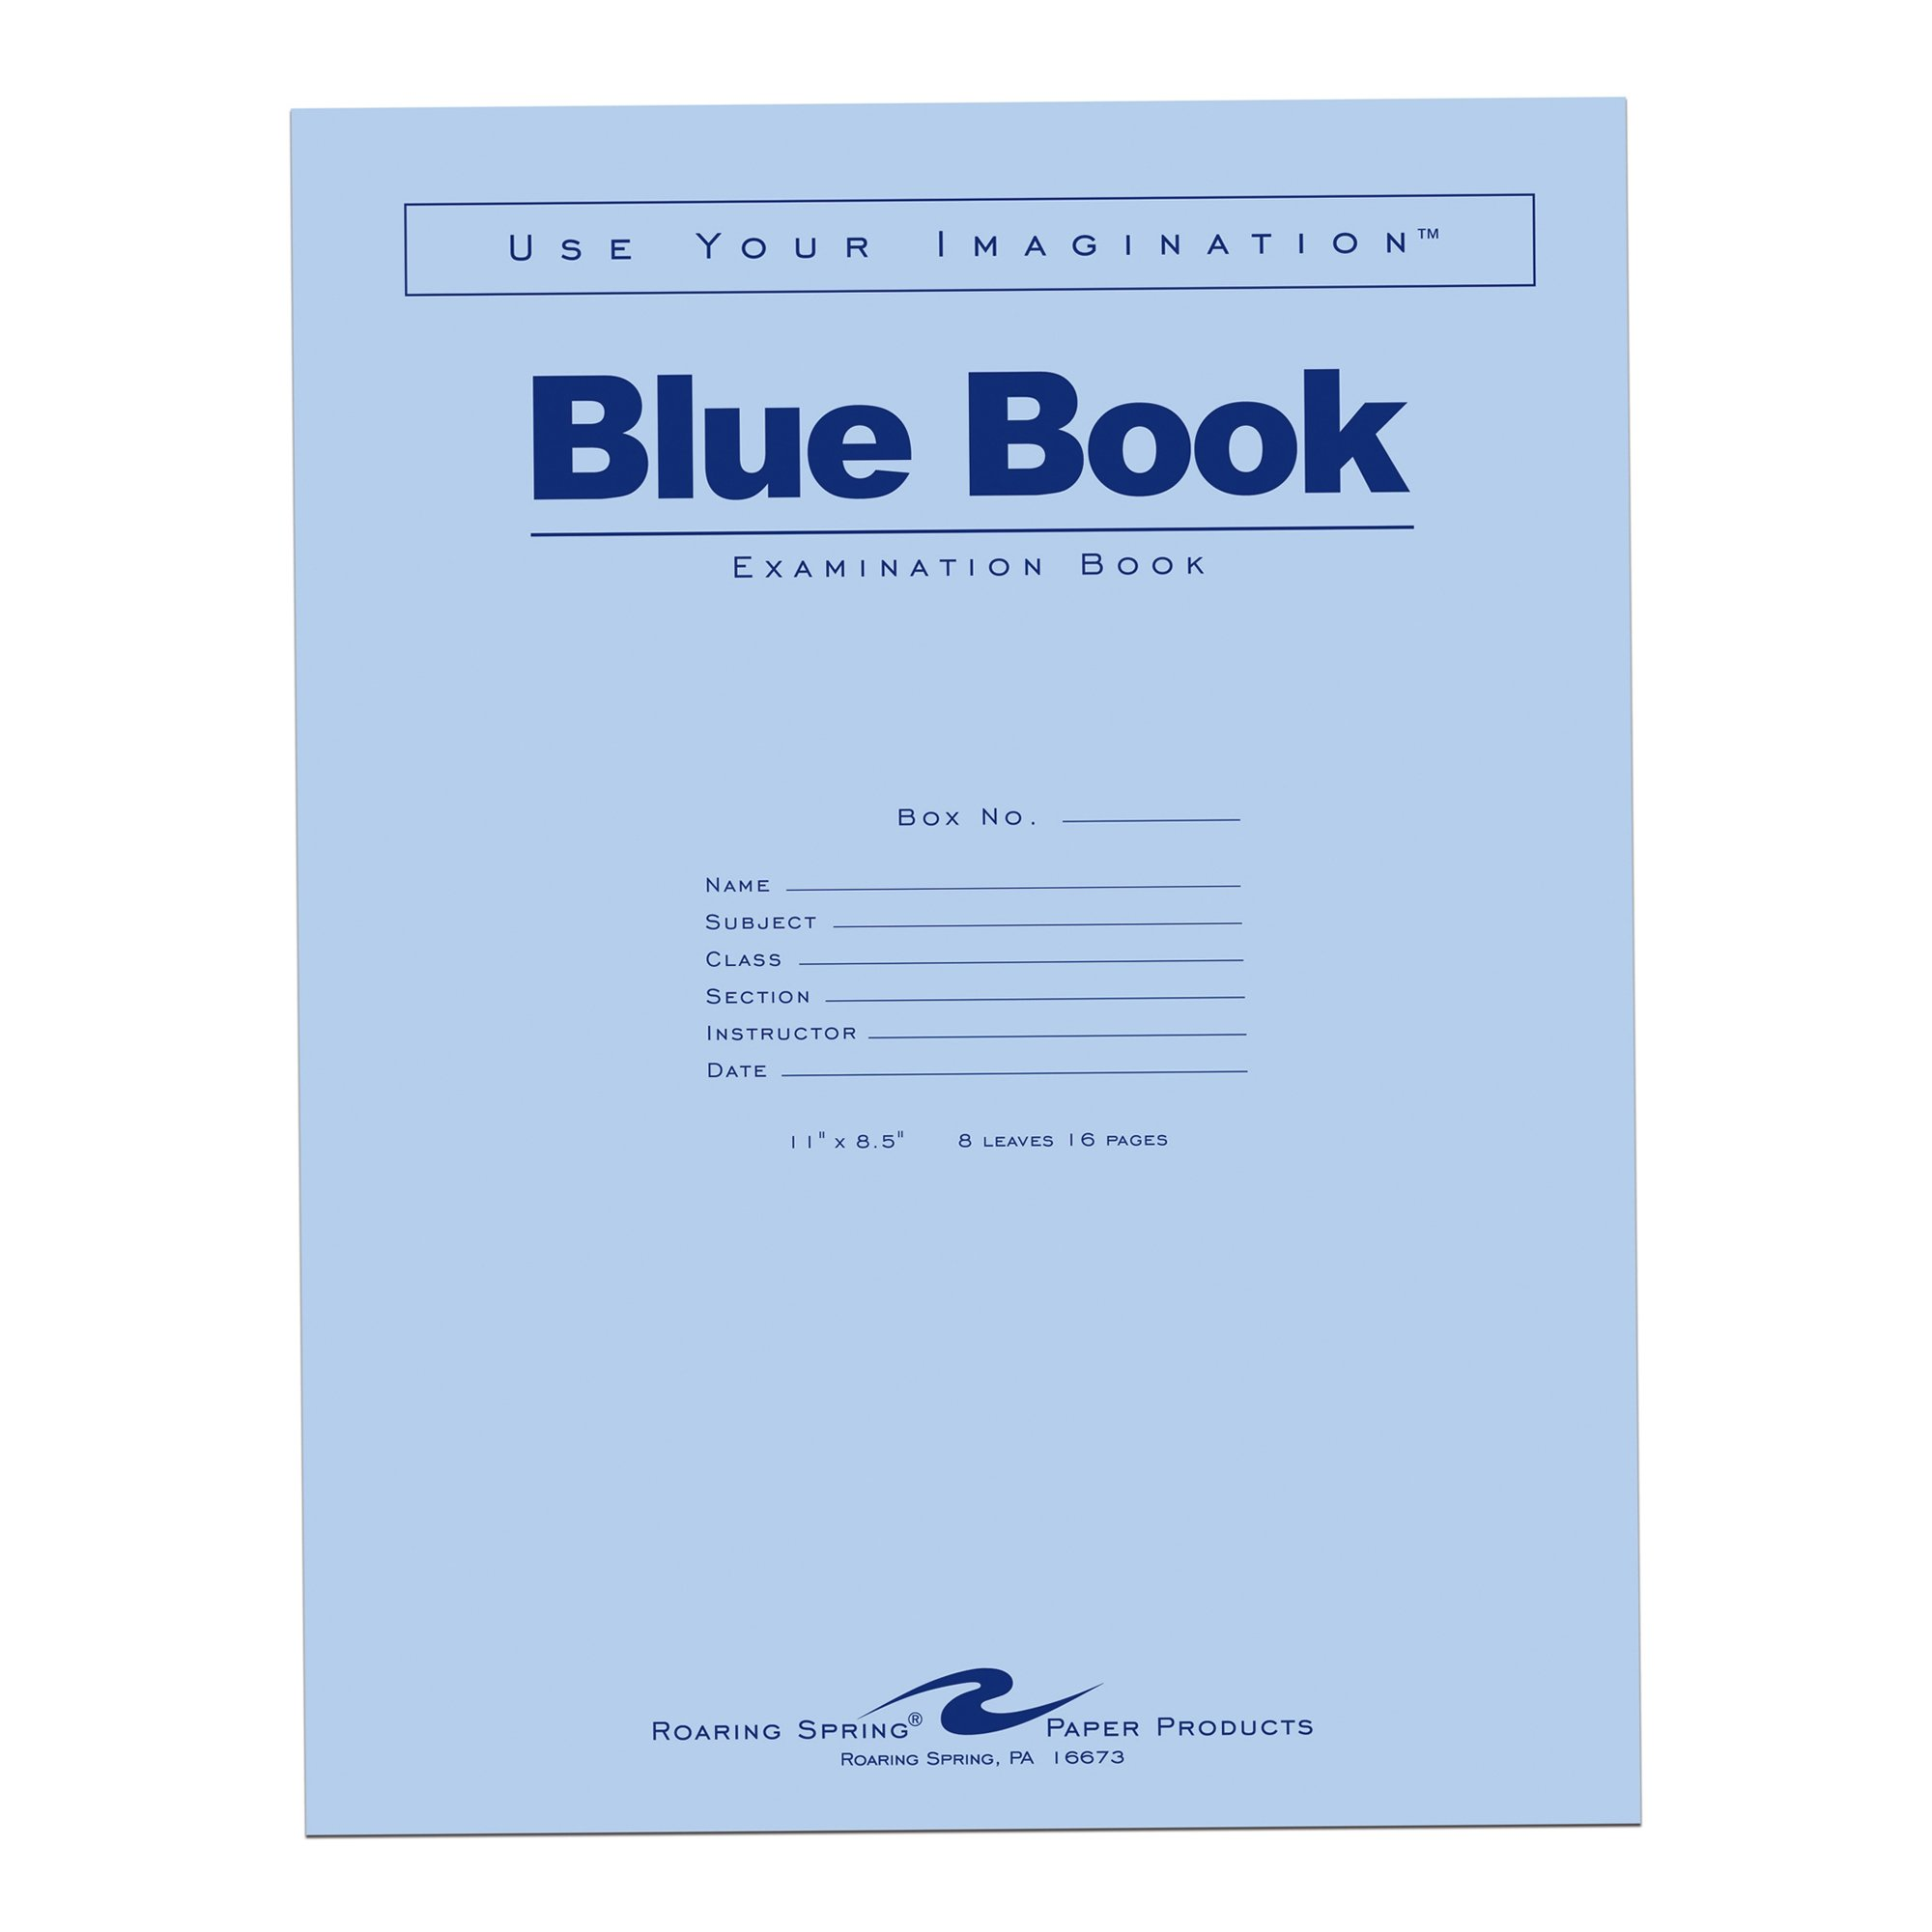 Case of 500 Exam Books, 11''x8.5'', 8 sheets/16 pages of 15# Smooth White Paper, Wide Ruled W/Margin, Heavy Blue Cover, Stapled